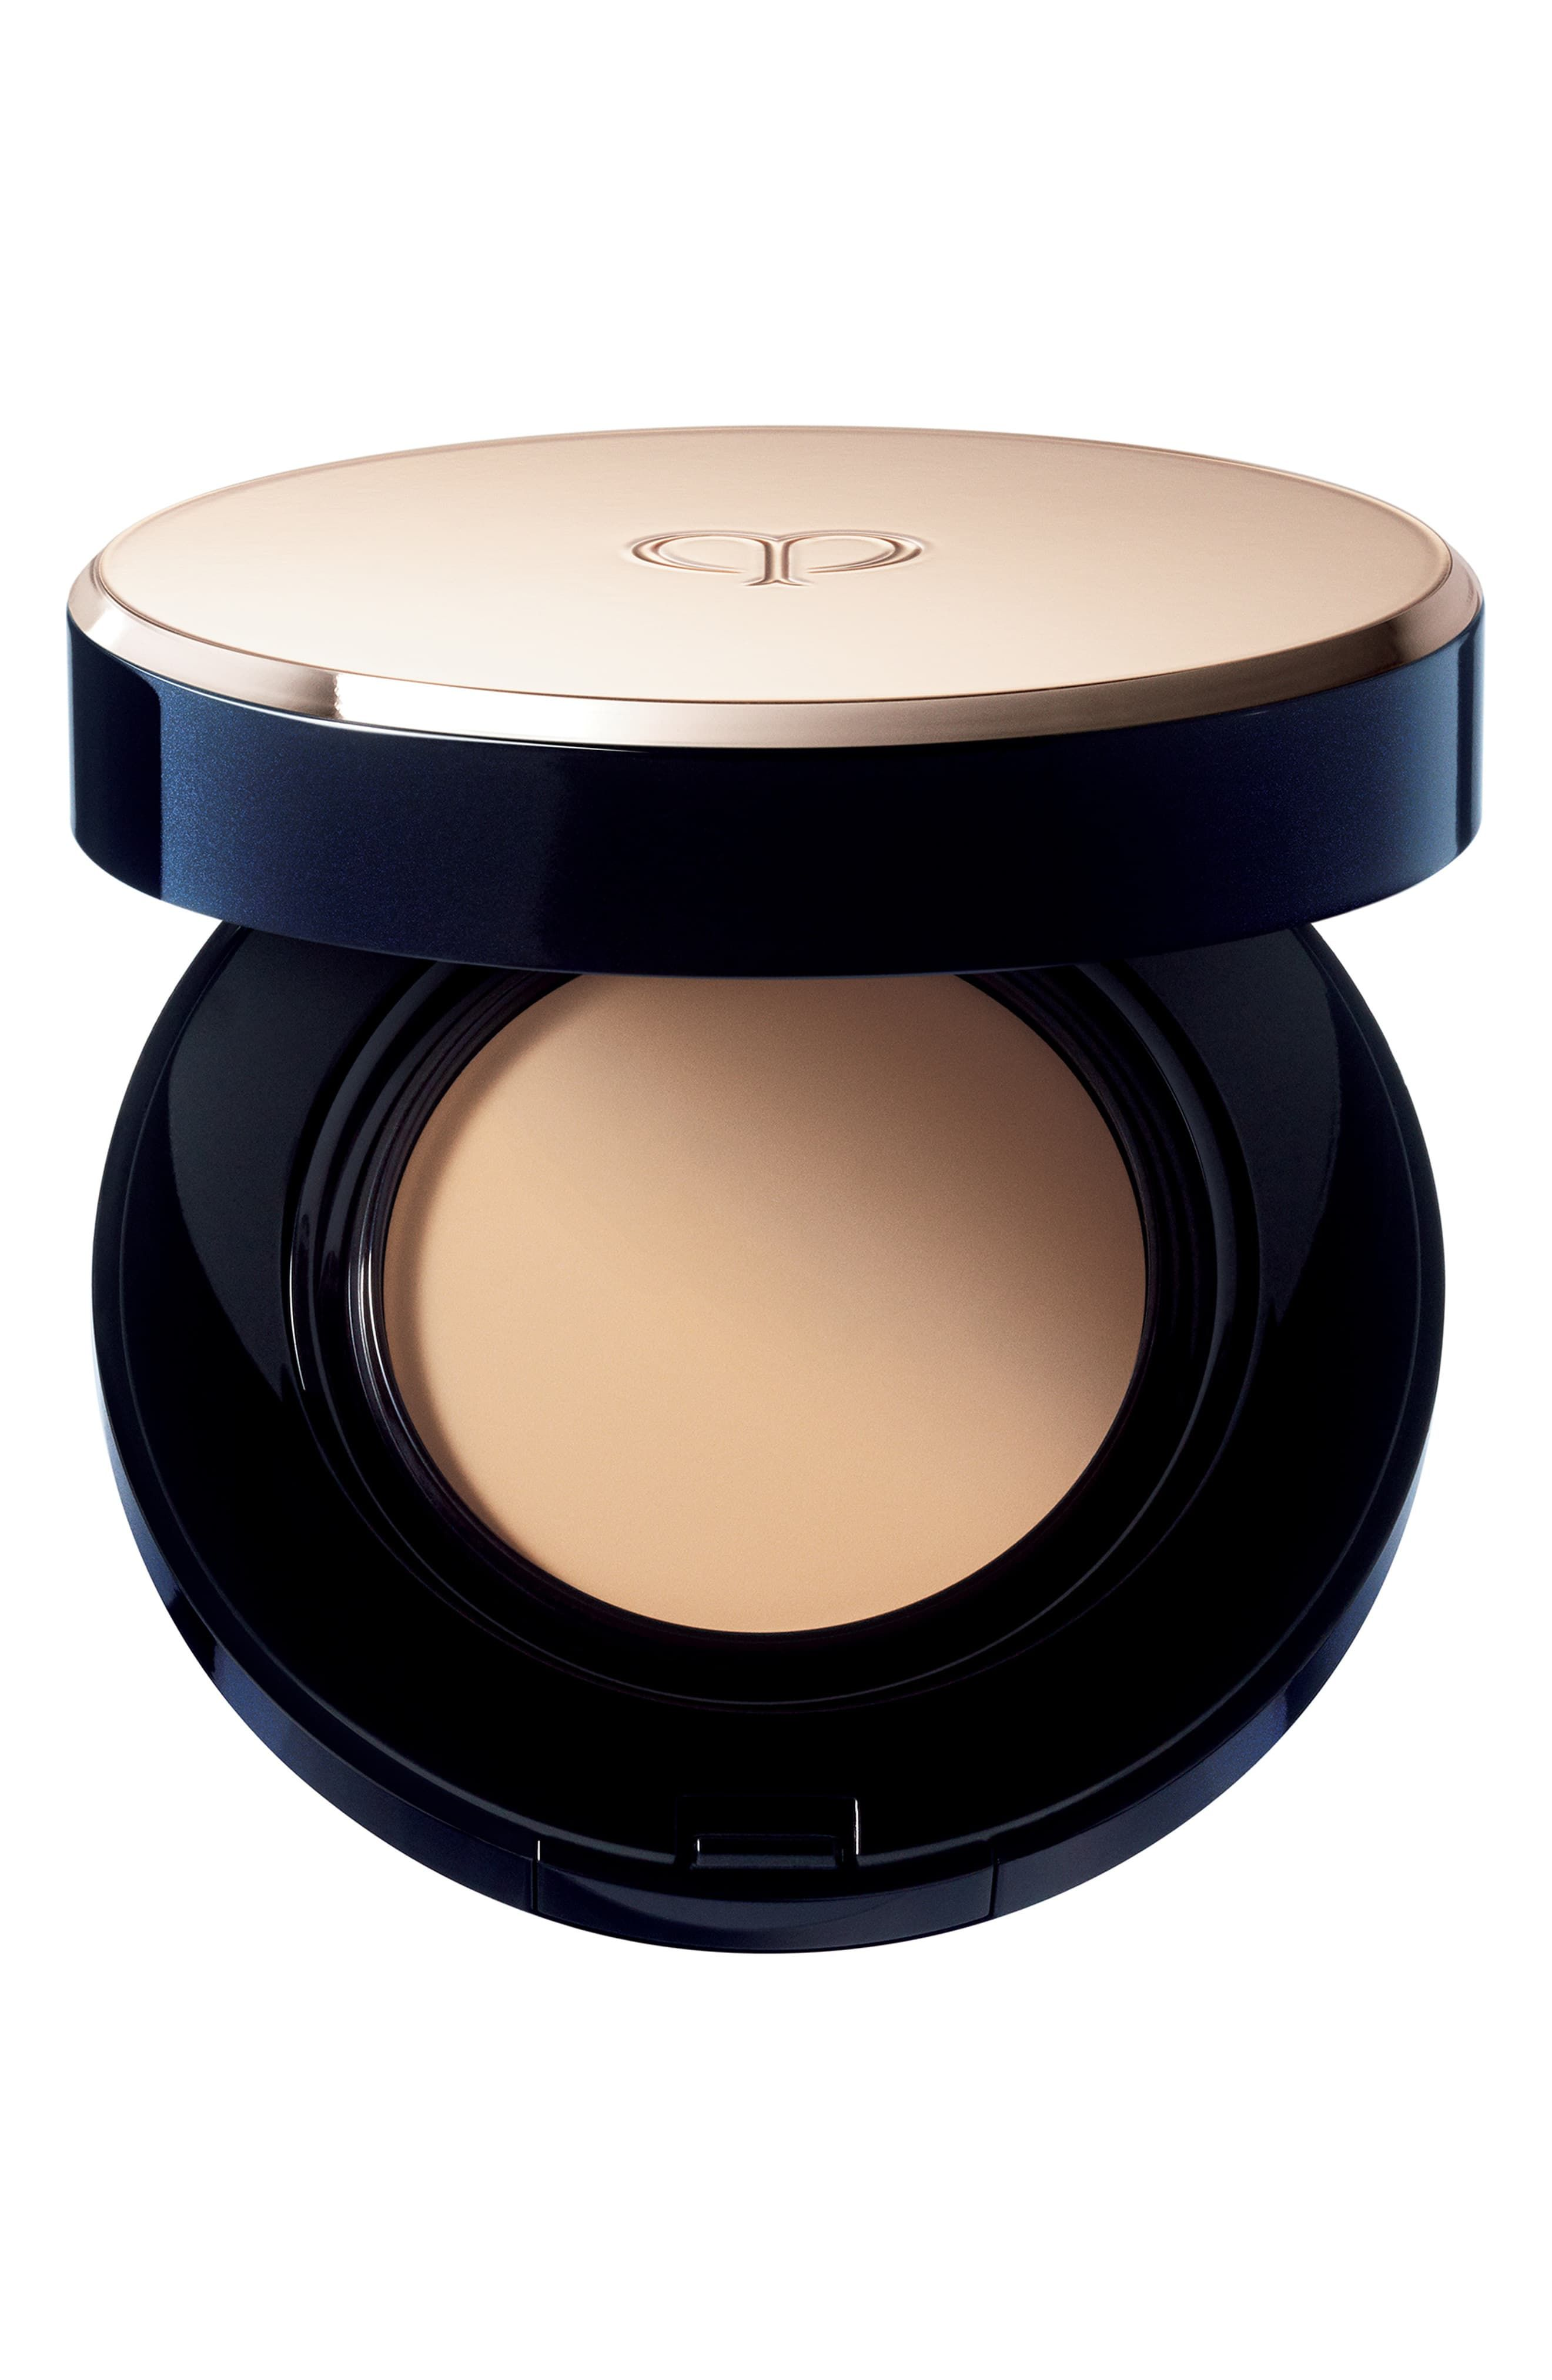 For Glowy Skin Radiant Cream to Powder Foundation SPF 24 Cle de Peau $98.00 SHOP NOW I have never tried a foundation that looked as untraceable as this unique cream-to-powder compact. It feels ultra moisturizing on the skin but dries down with the most natural, glowy finish.